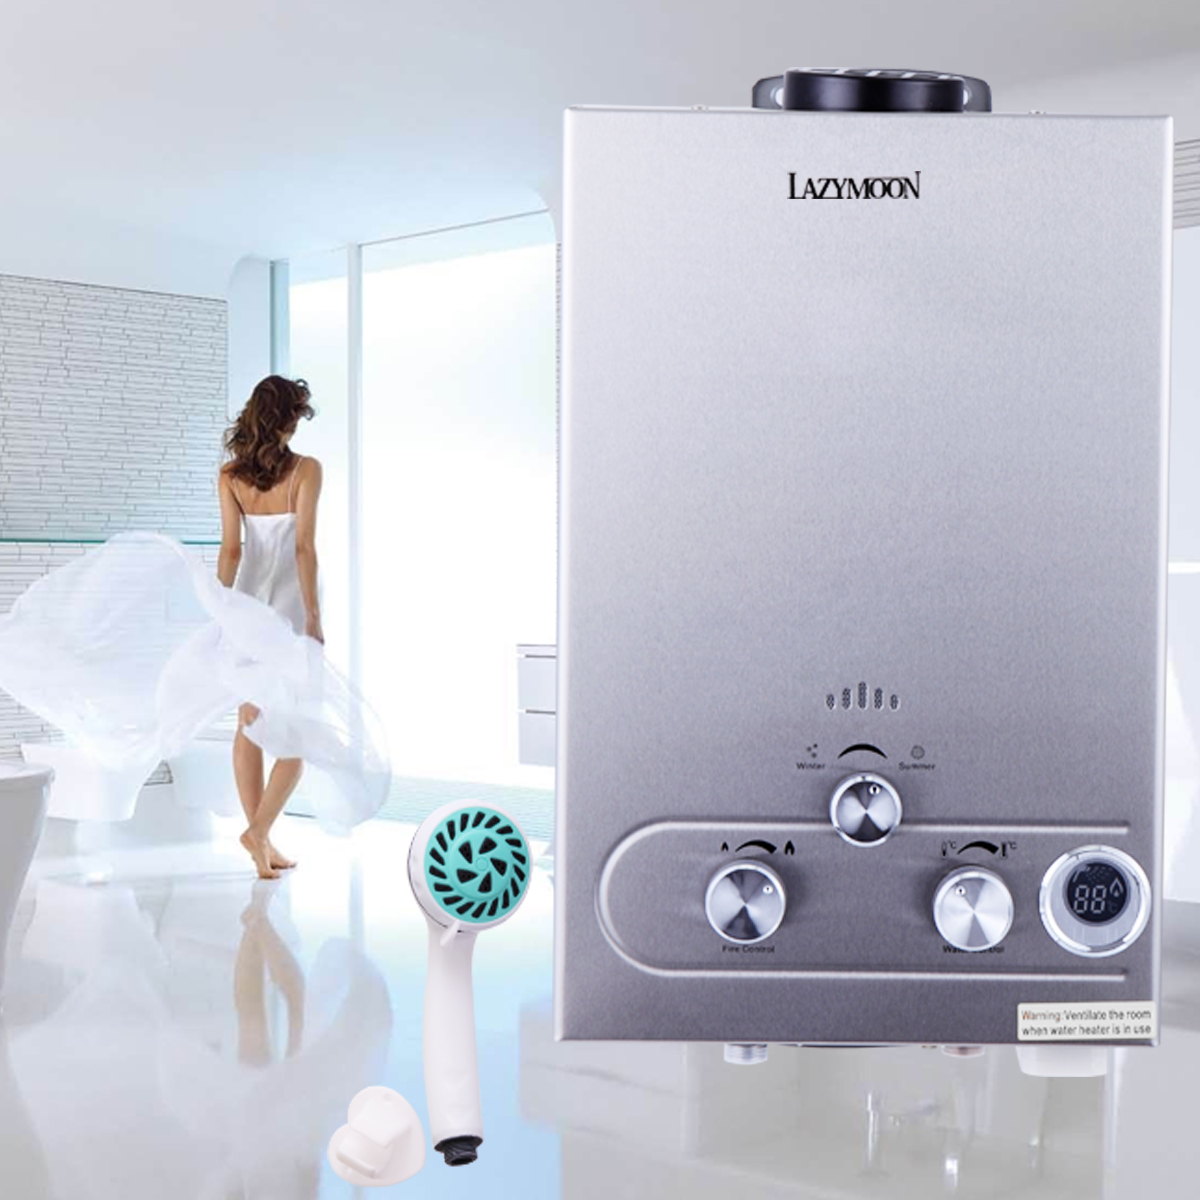 lazymoon 8l 2gpm propane lpg gas tankless water heater instant hot water boiler shower - Tankless Propane Water Heater